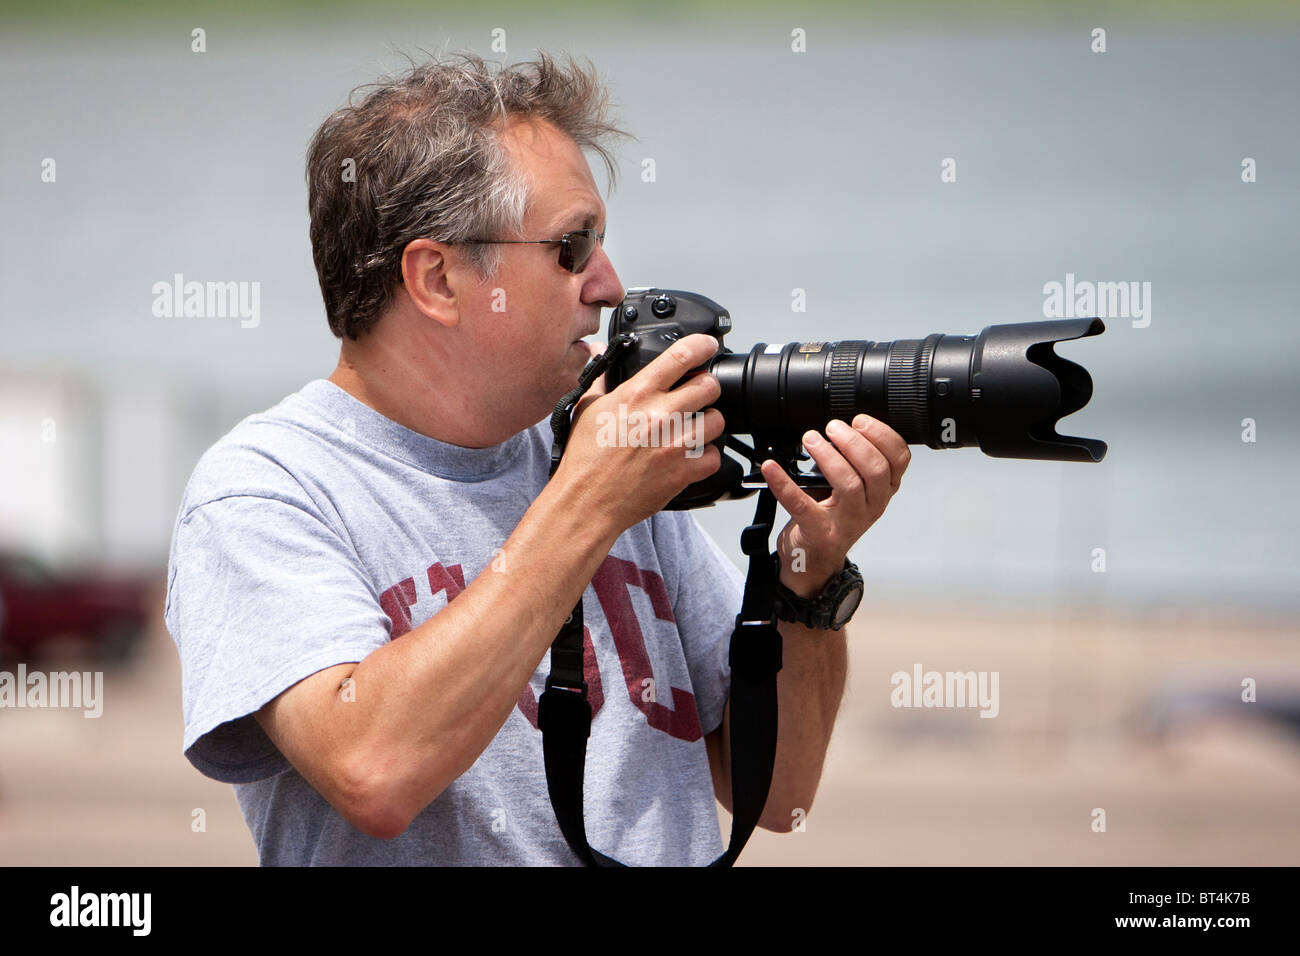 Professional Photographer Jim Reed scouts a photo in South Dakota, USA, June 3, 2010. - Stock Image